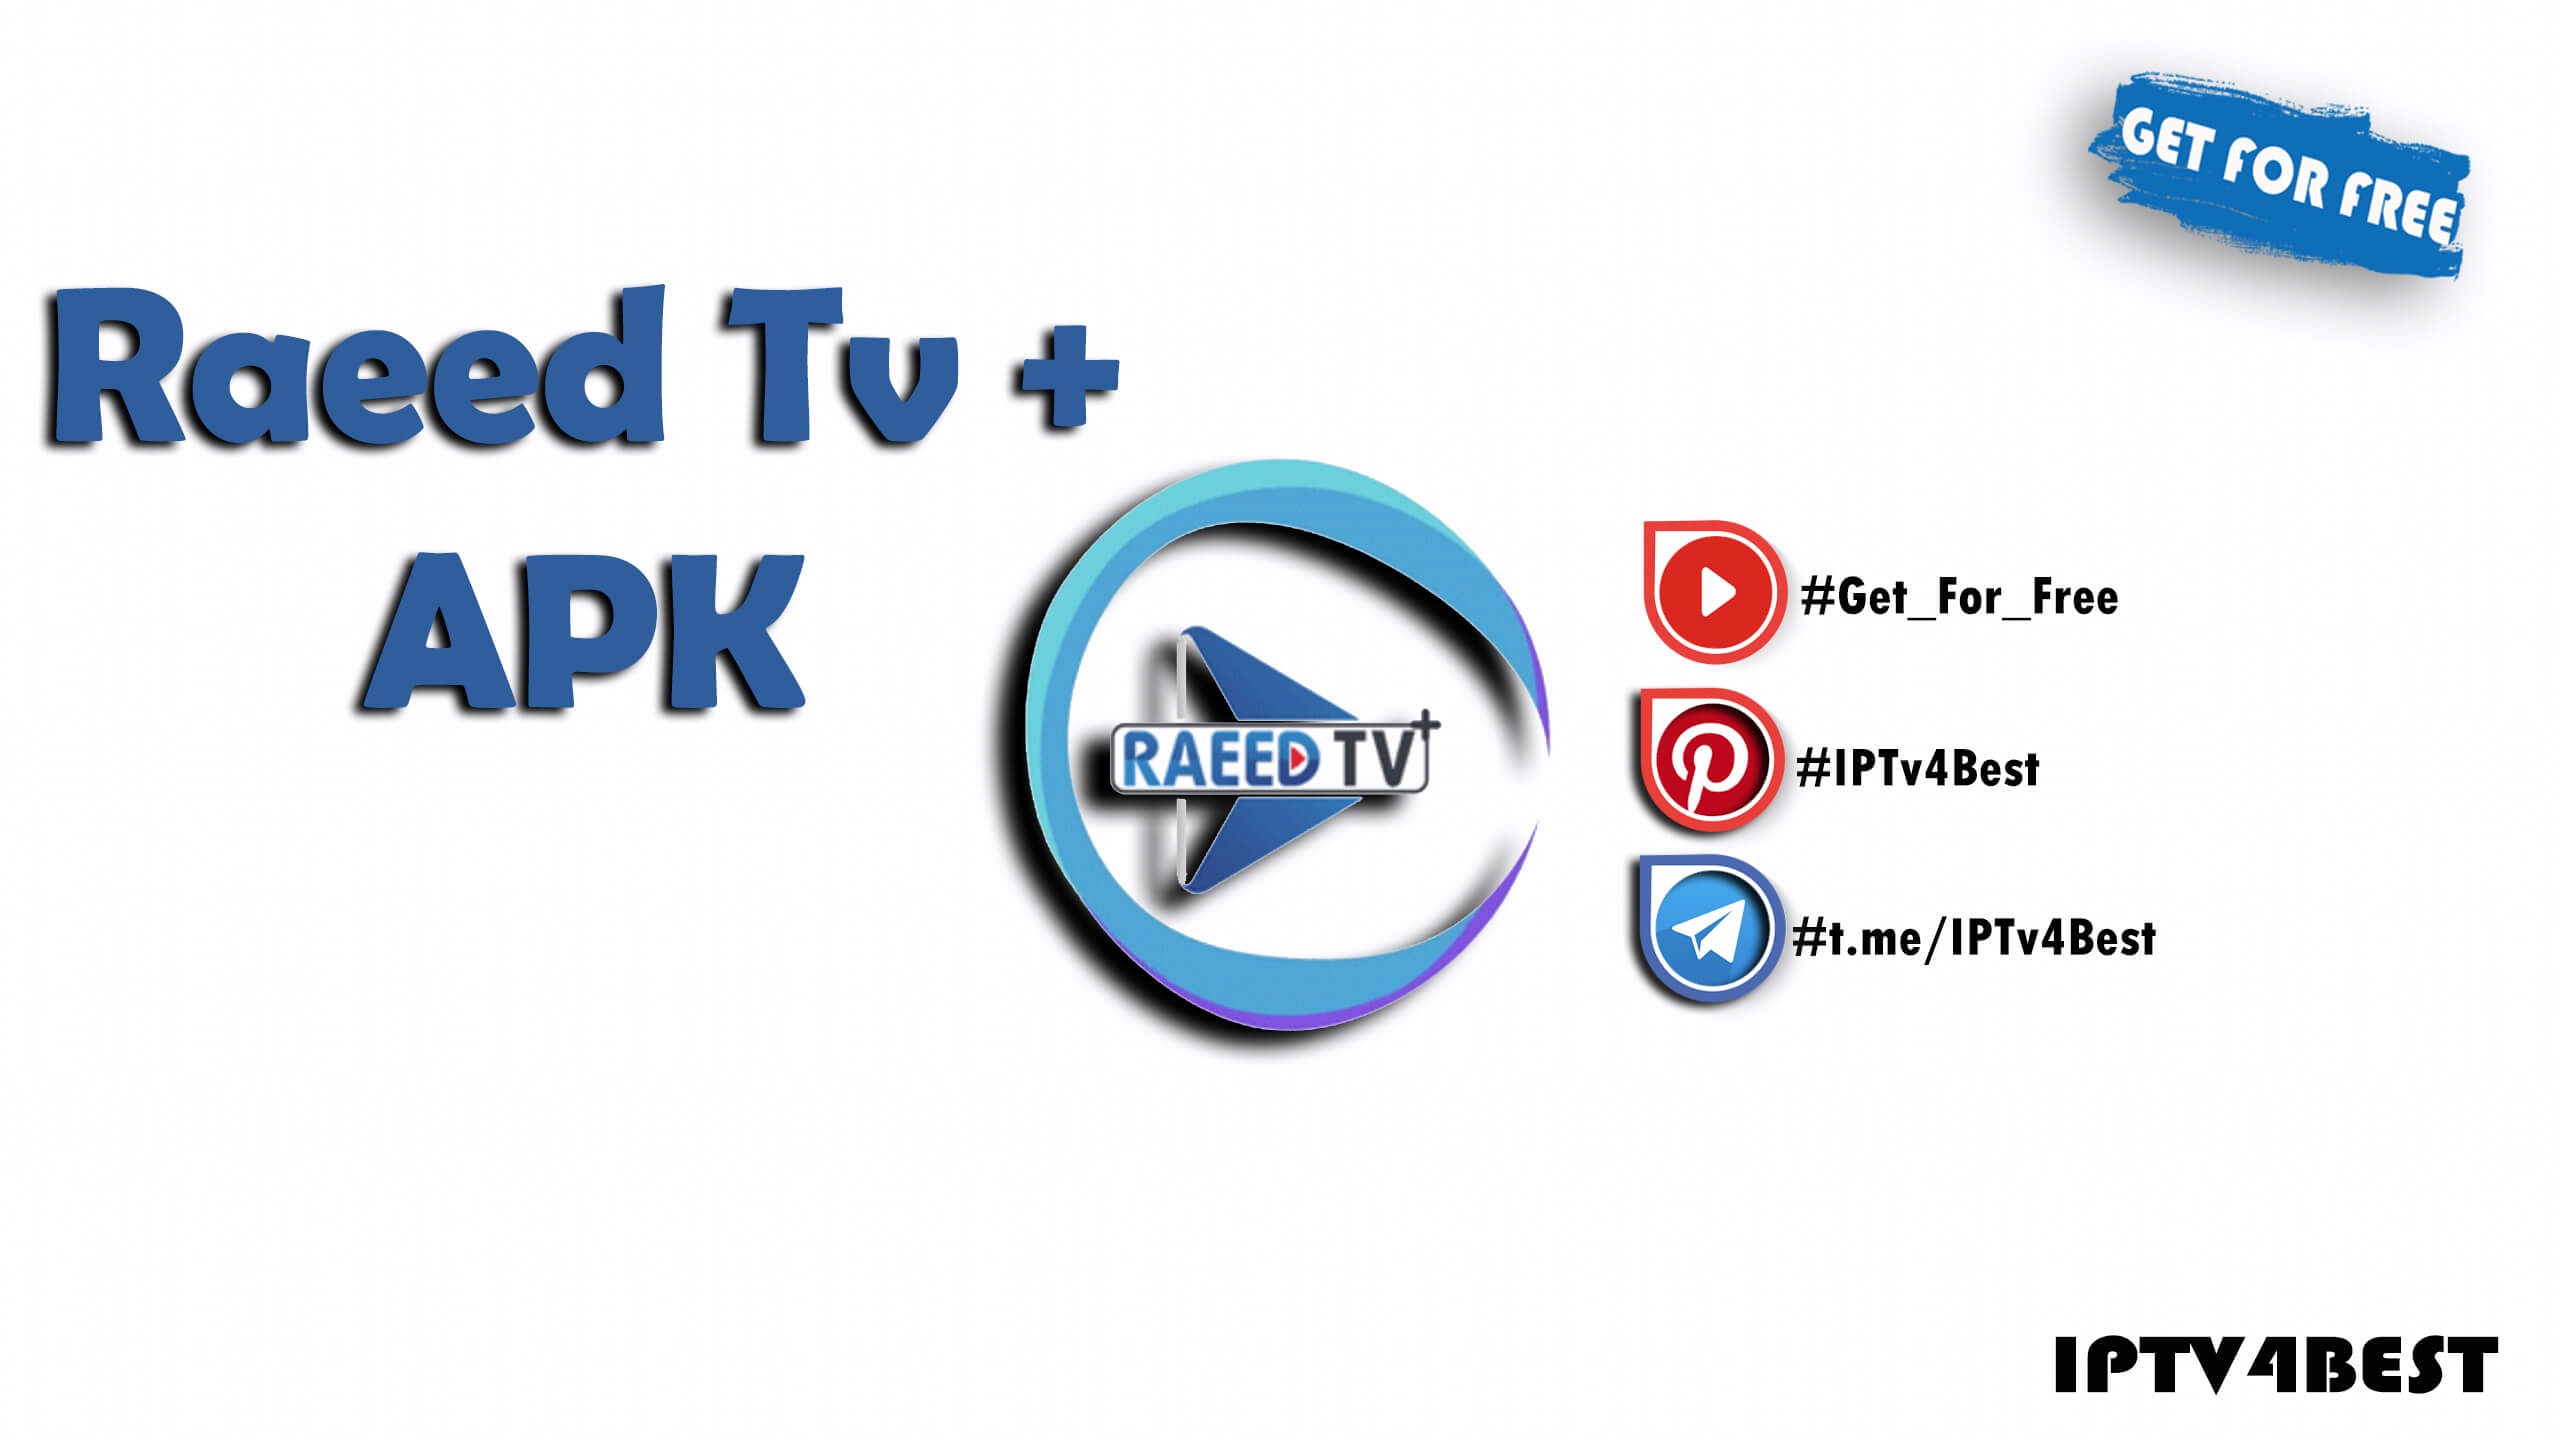 Raeed Tv+ APK IPTv Android APK By IPTV4BEST